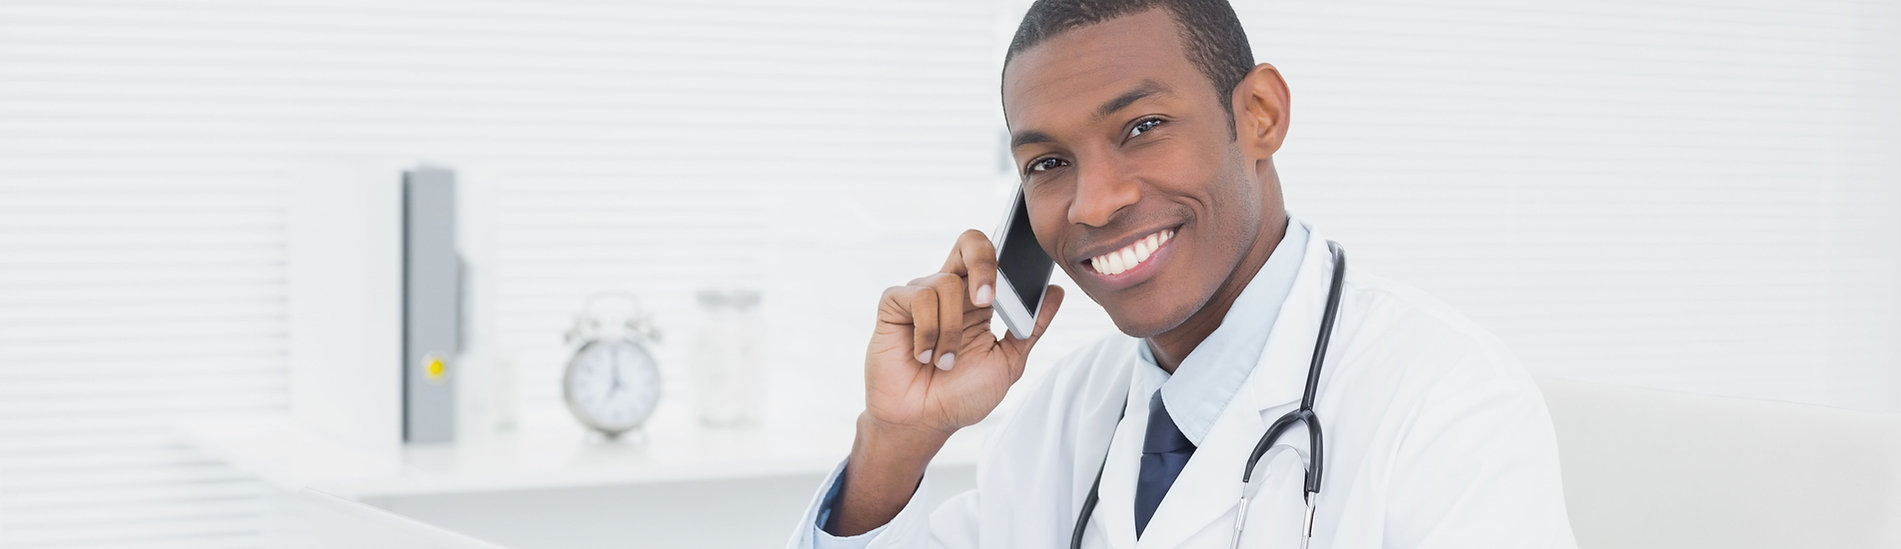 Male_Doctor_Smilling_Cell phone_Laptop.j